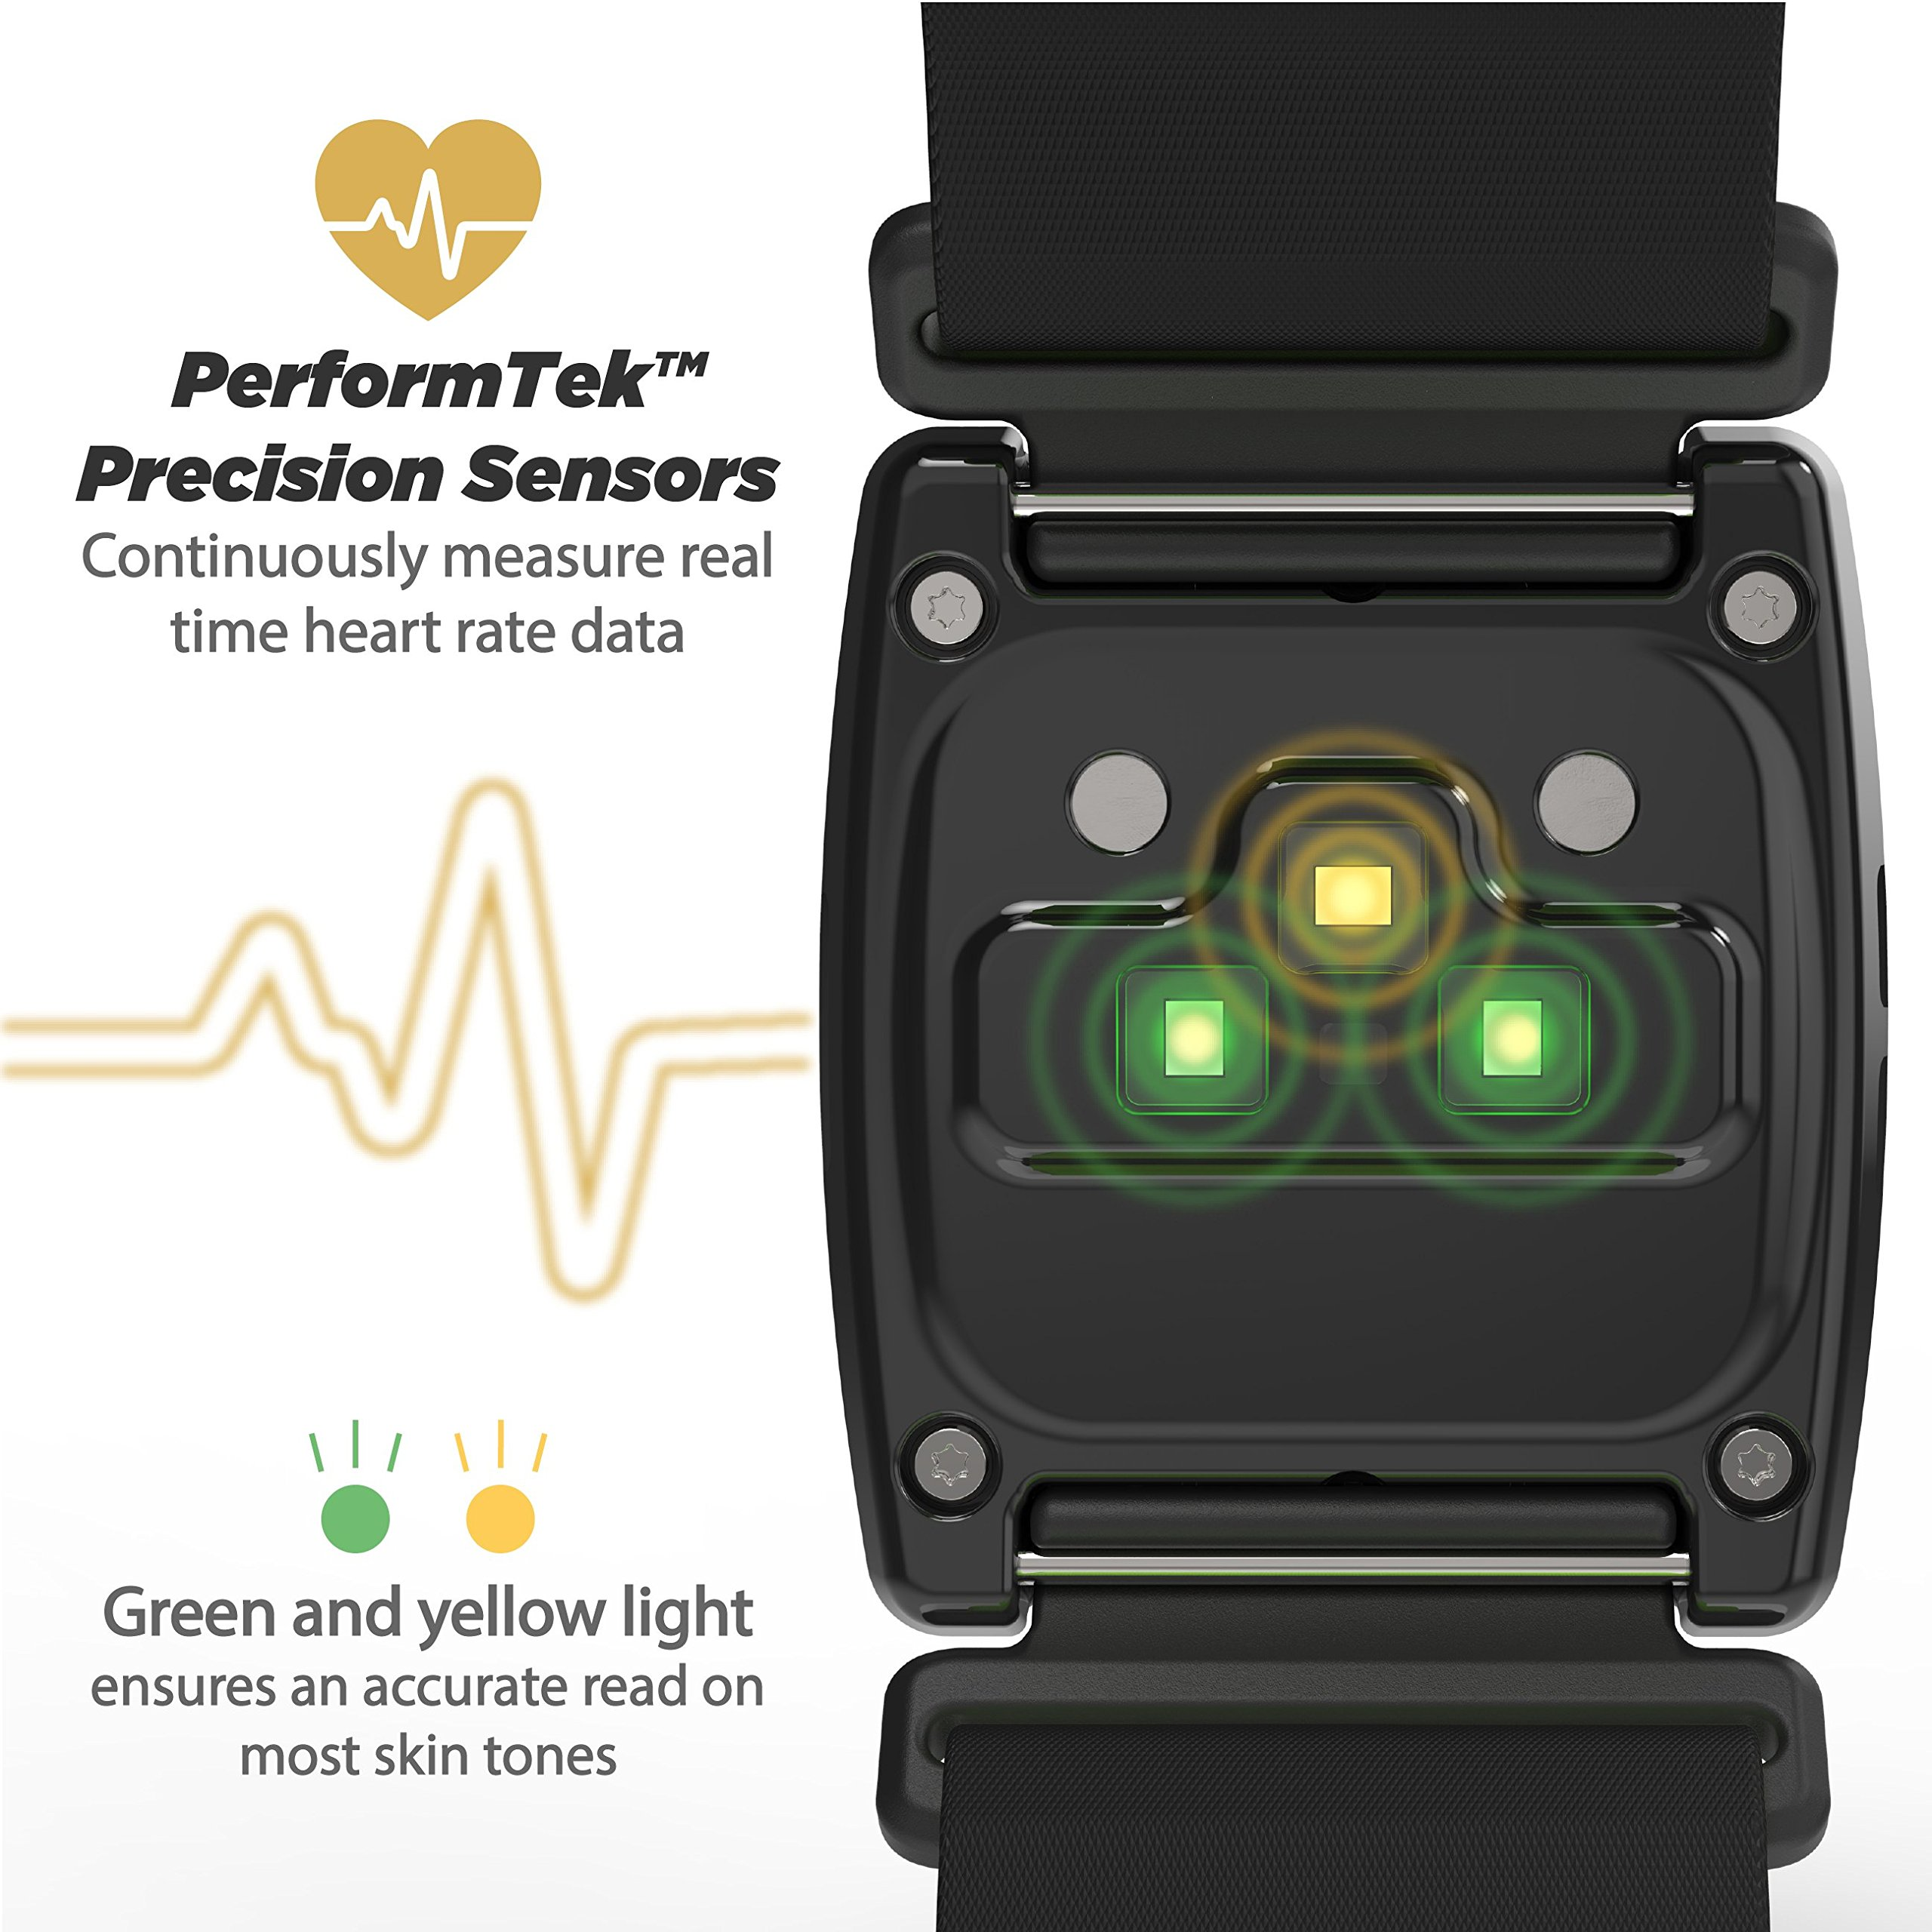 Scosche Rhythm24 - Waterproof Armband Heart Rate Monitor - Green by Scosche (Image #3)